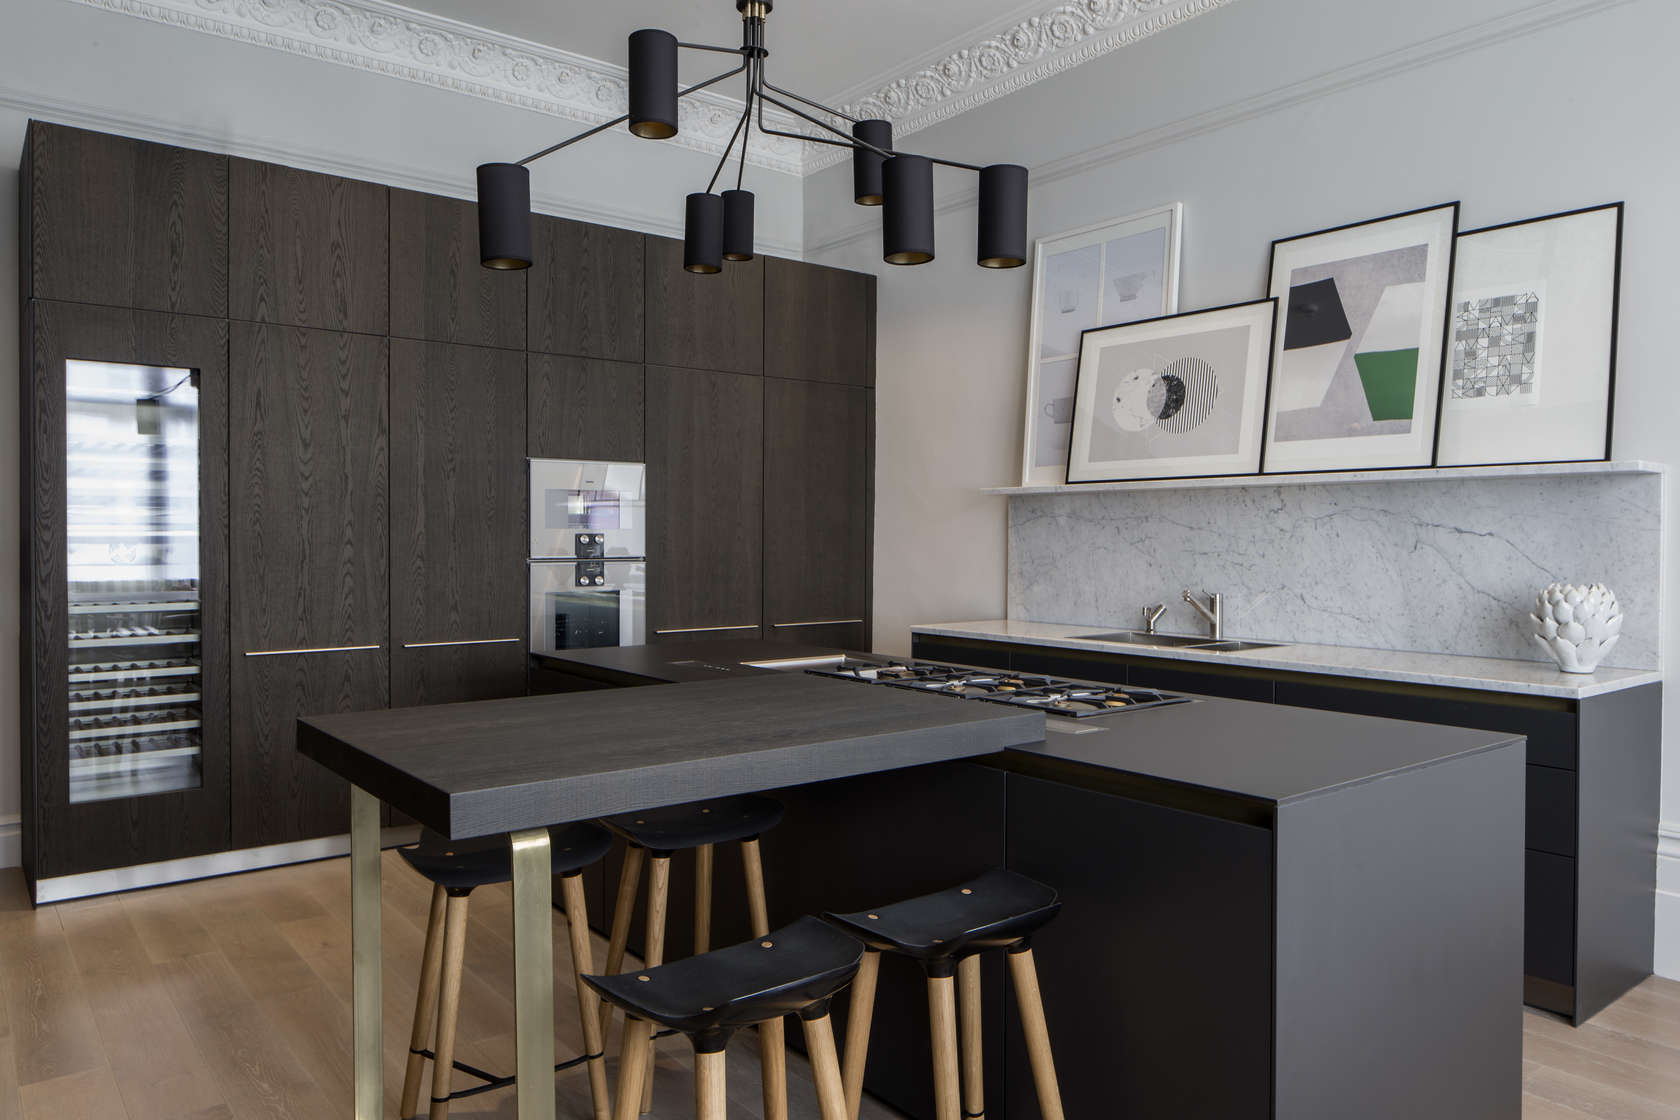 bespoke bulthaup in north west london apartment architizer. Black Bedroom Furniture Sets. Home Design Ideas